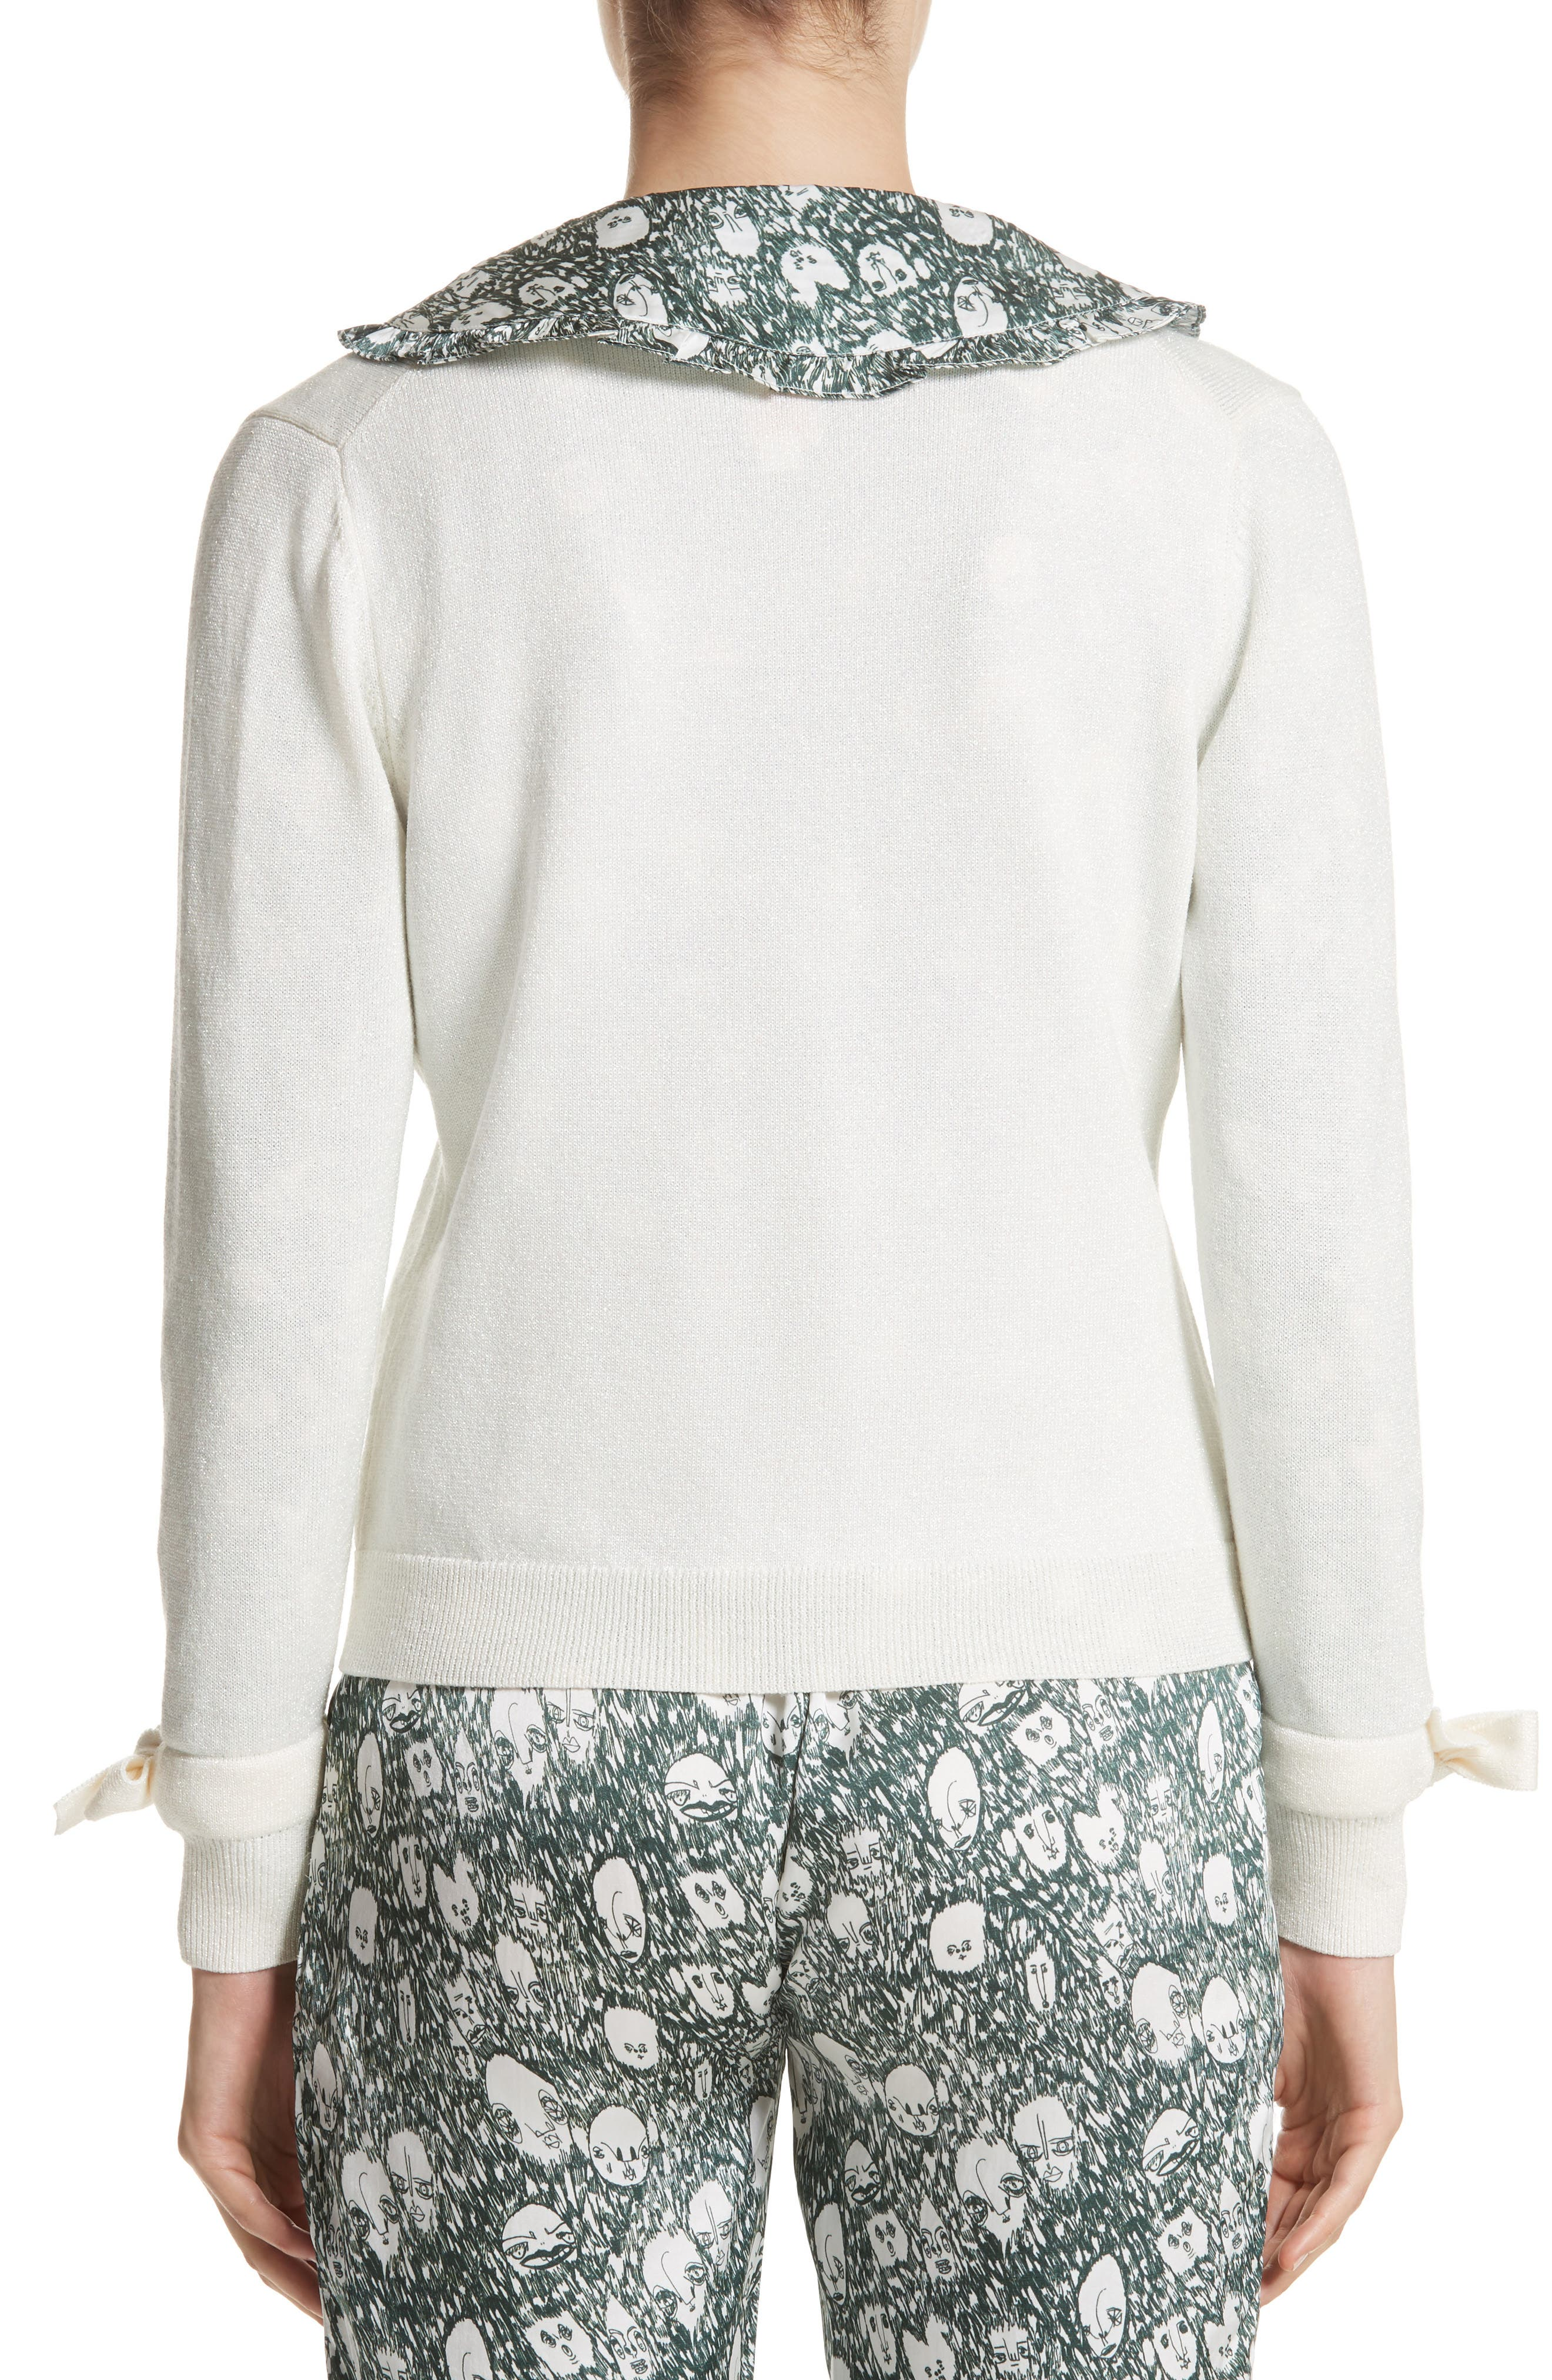 Lorna Embellished Bow Cuff Cardigan,                             Alternate thumbnail 2, color,                             Cream Lurex